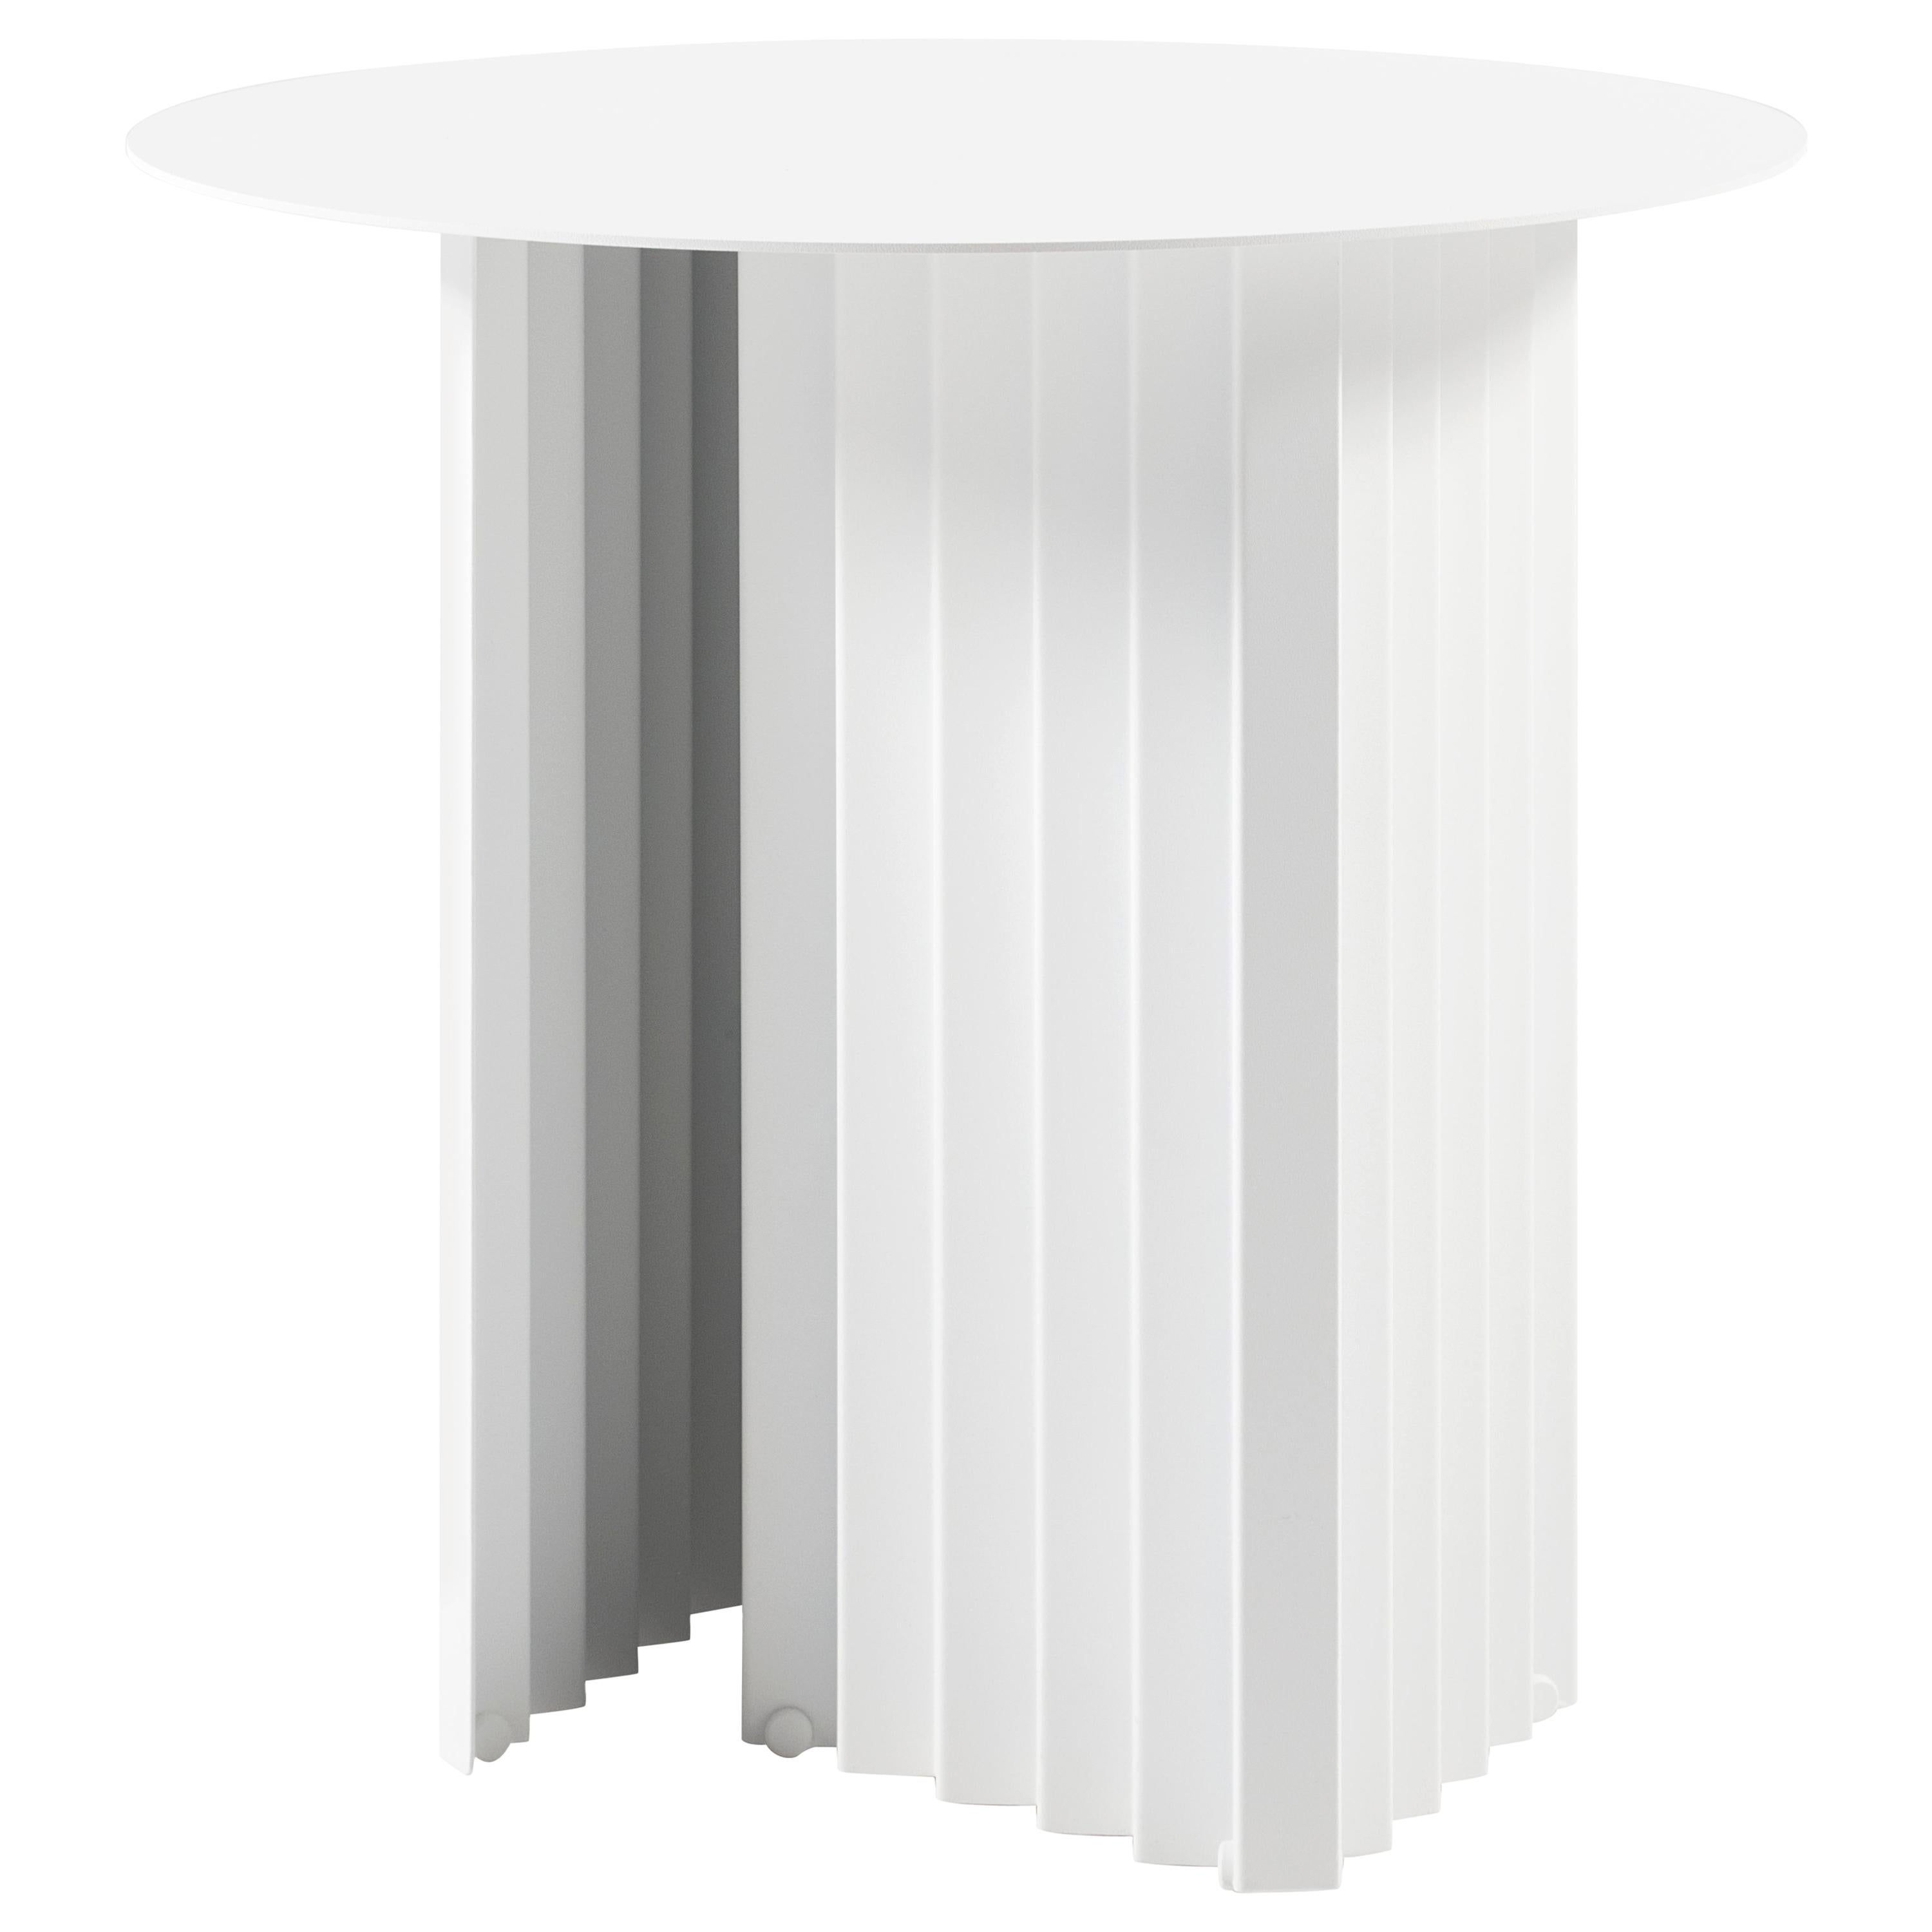 RS Barcelona Plec Round Small Table in White Metal by A.P.O.